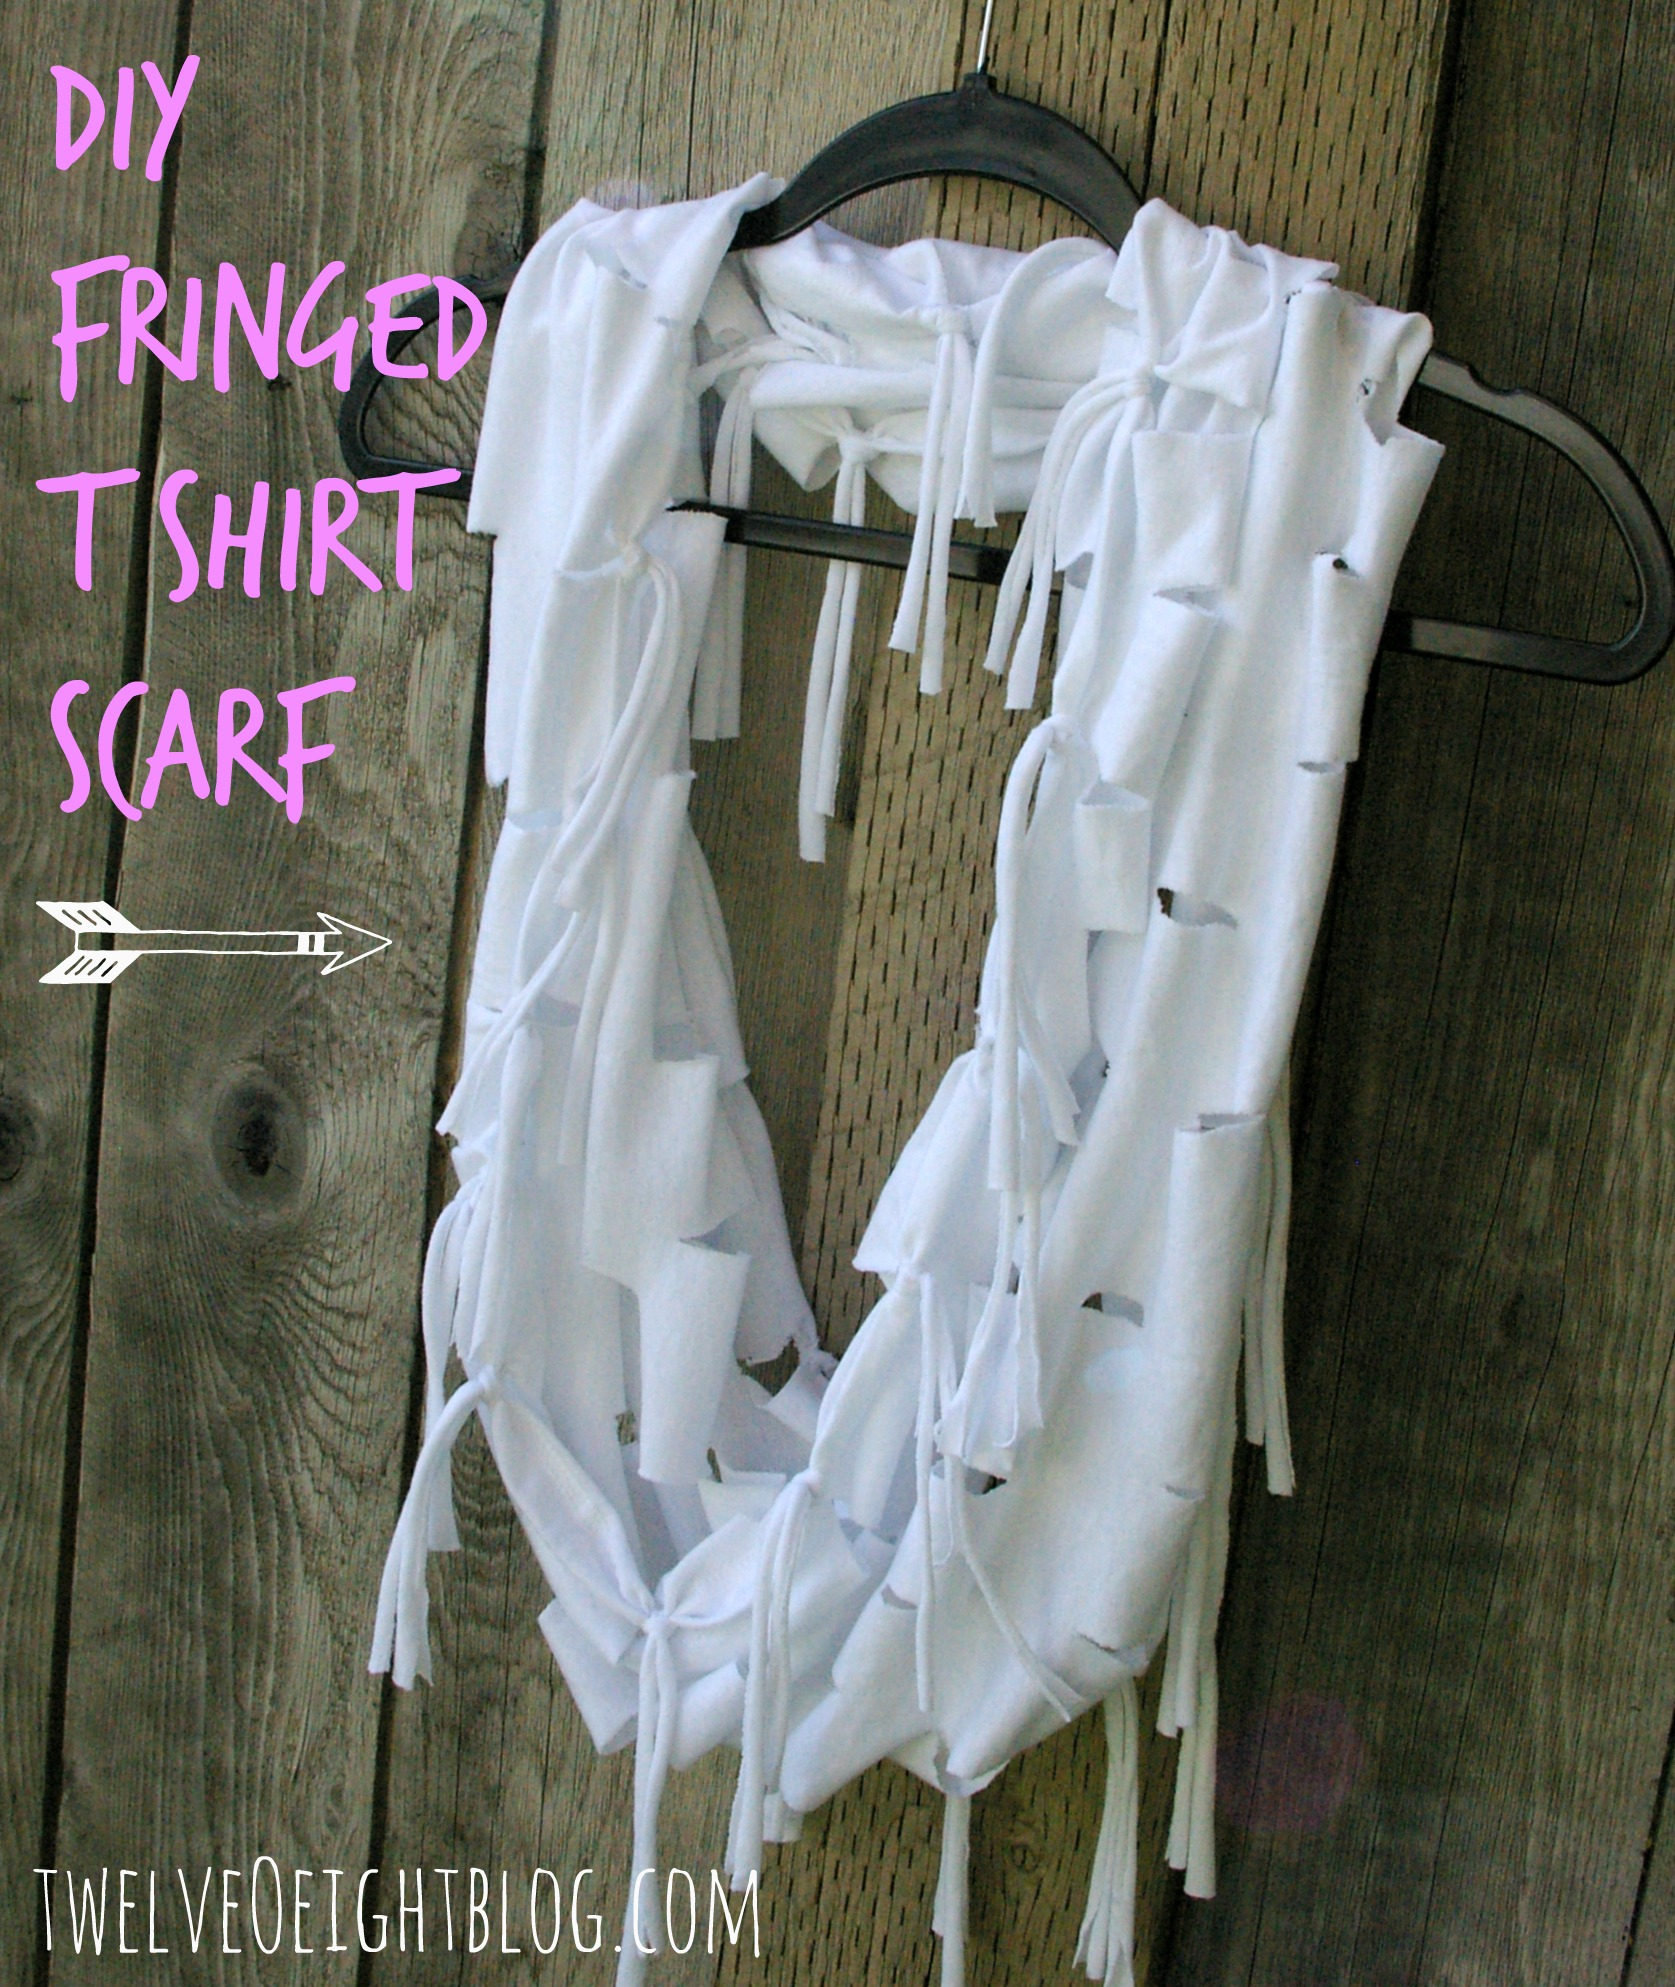 Diy Tshirt Scarf Inspiration Monday Party Diy Ideas For Every Room